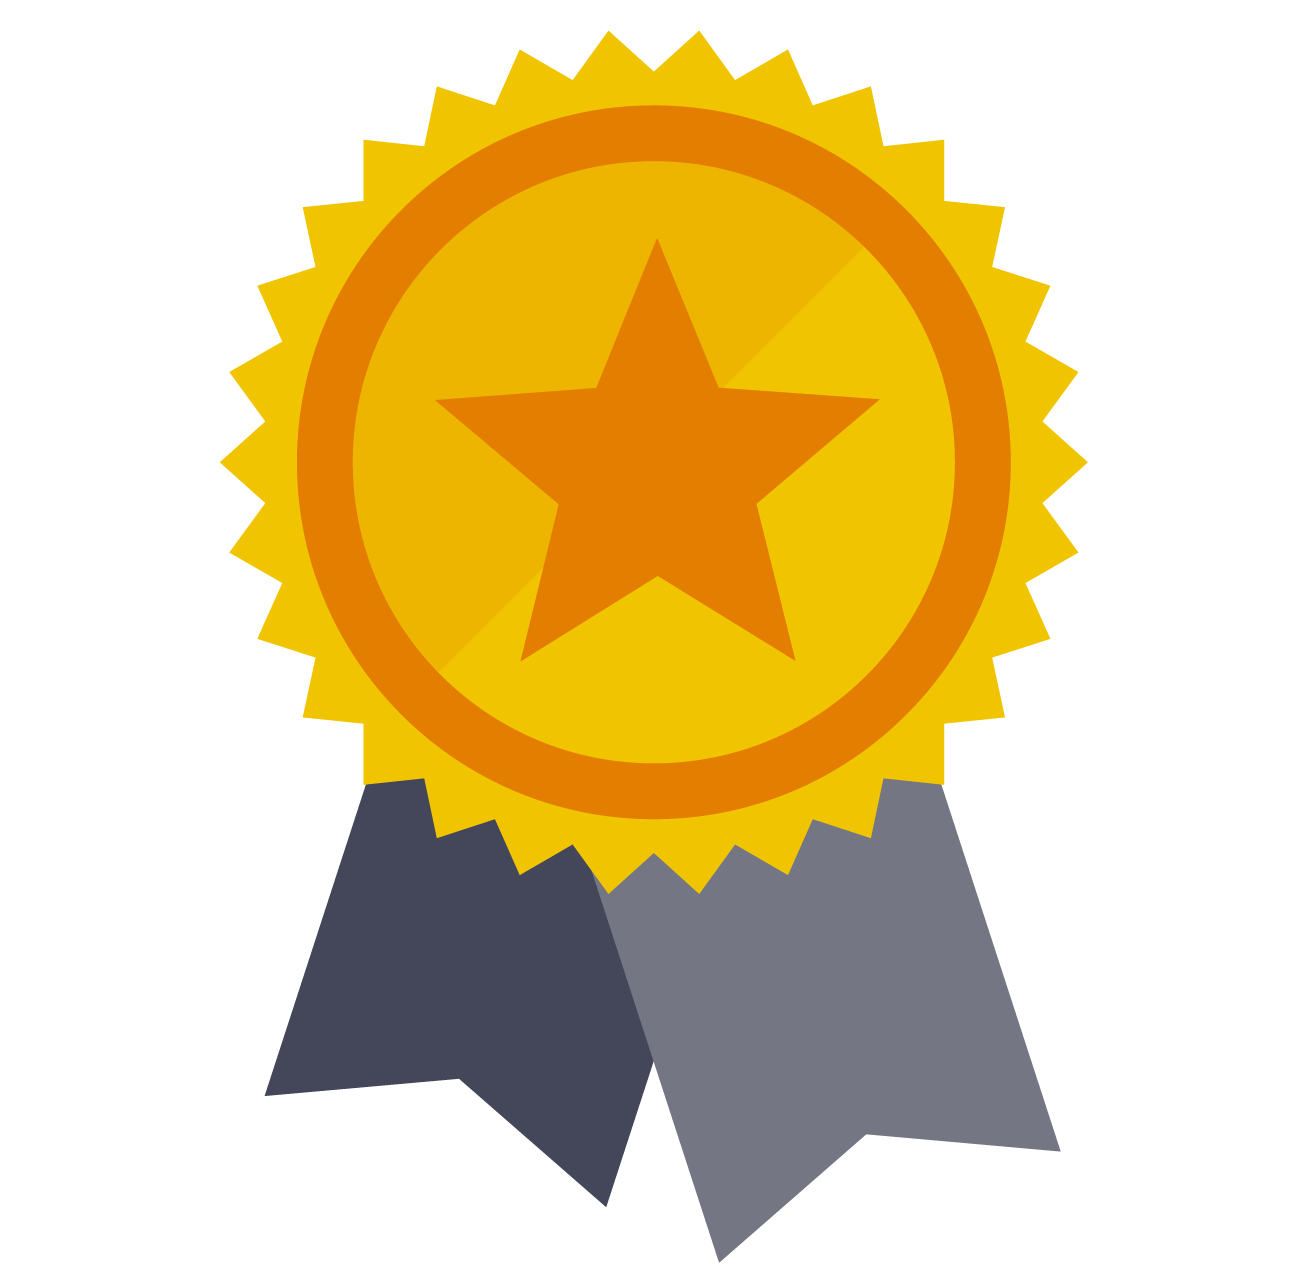 Clipart gold star award vector transparent Image - IMG 3872.PNG | Lumber Tycoon 2 Wikia | FANDOM powered by Wikia vector transparent